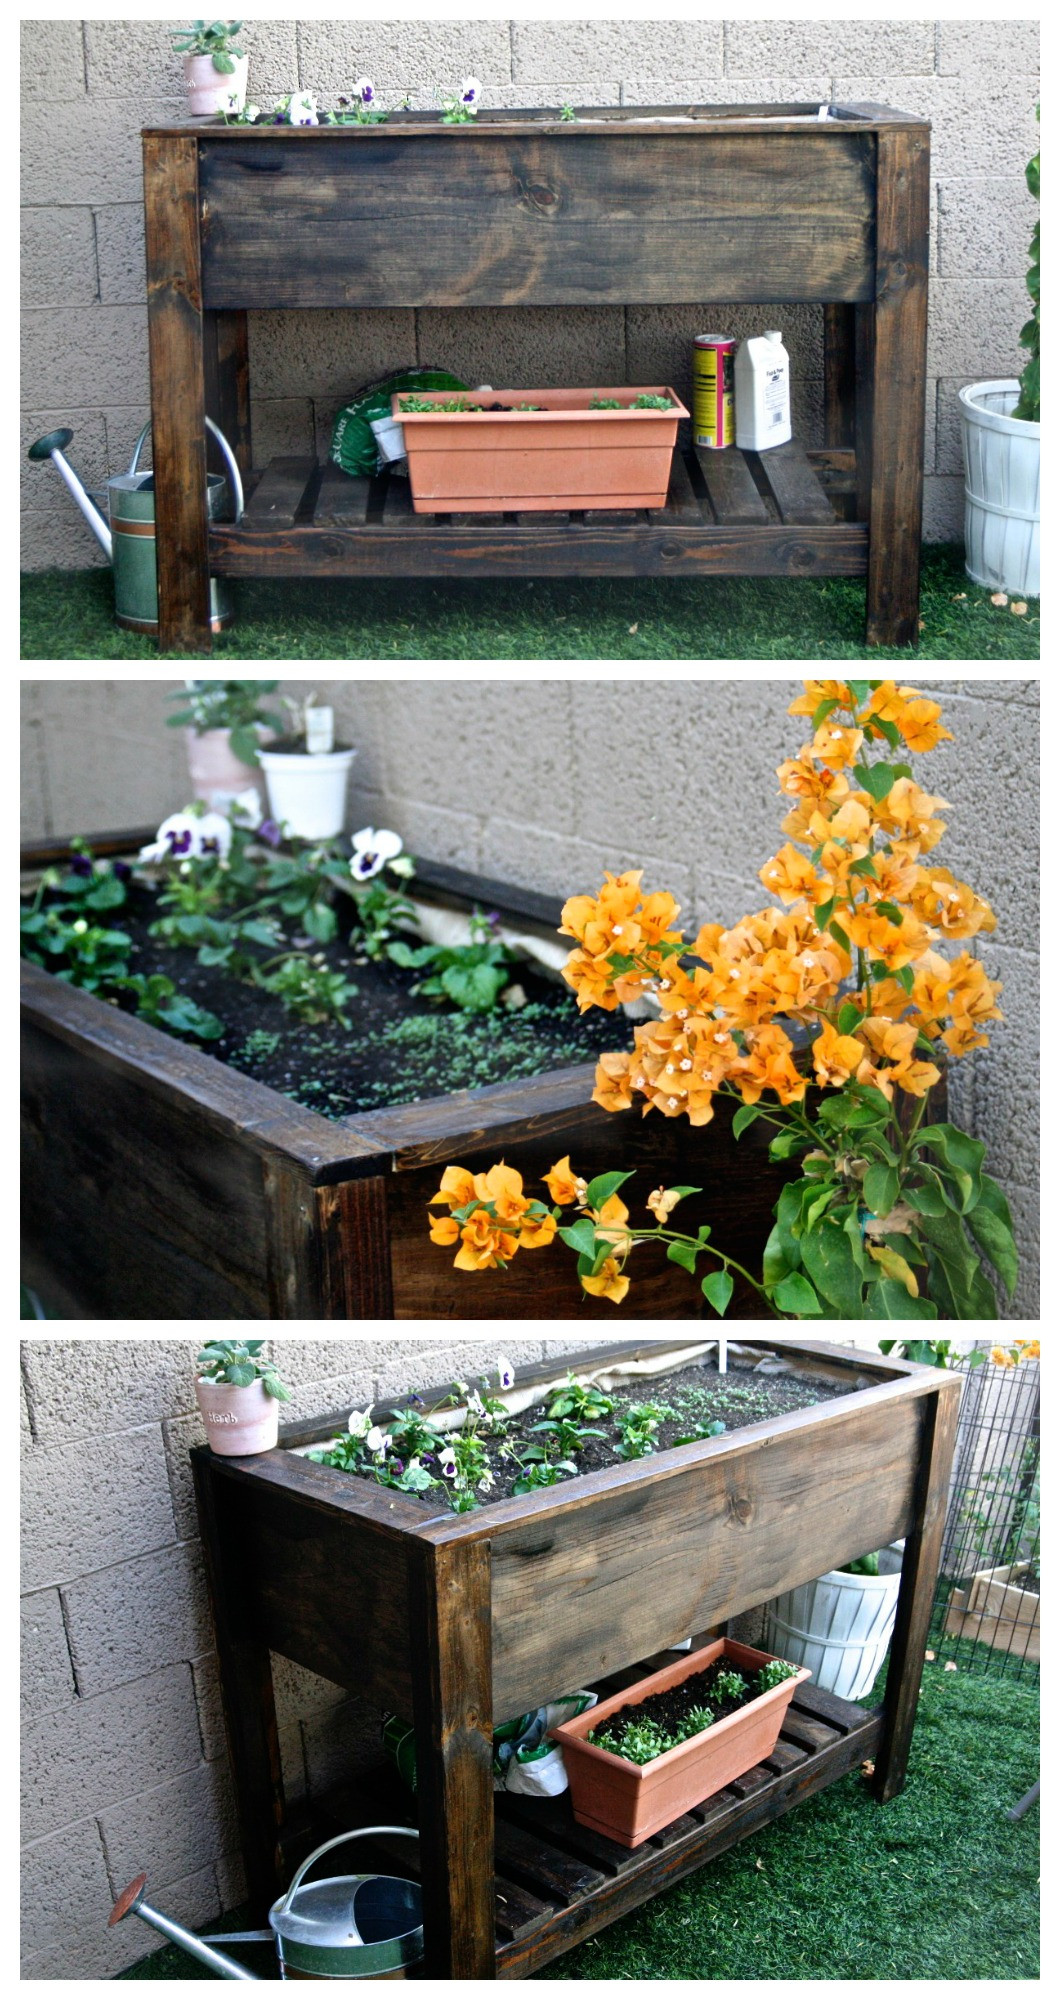 Best ideas about DIY Raised Planter Boxes . Save or Pin Ana White Now.